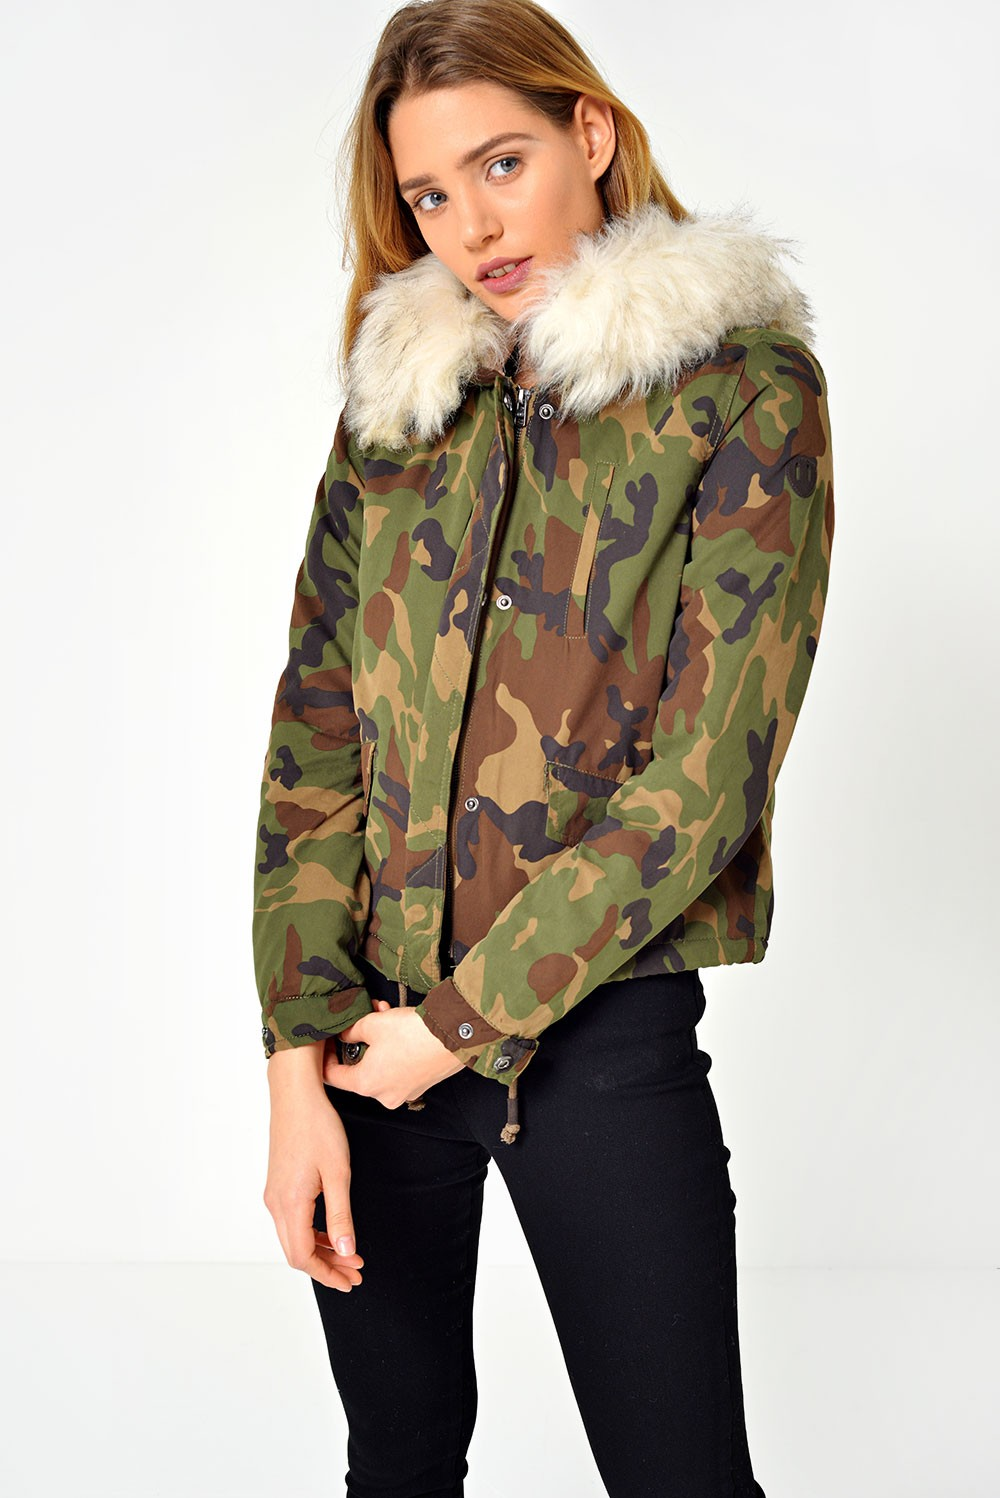 Only Skylar Short Fur Parka Coat in Camiflouge | iCLOTHING